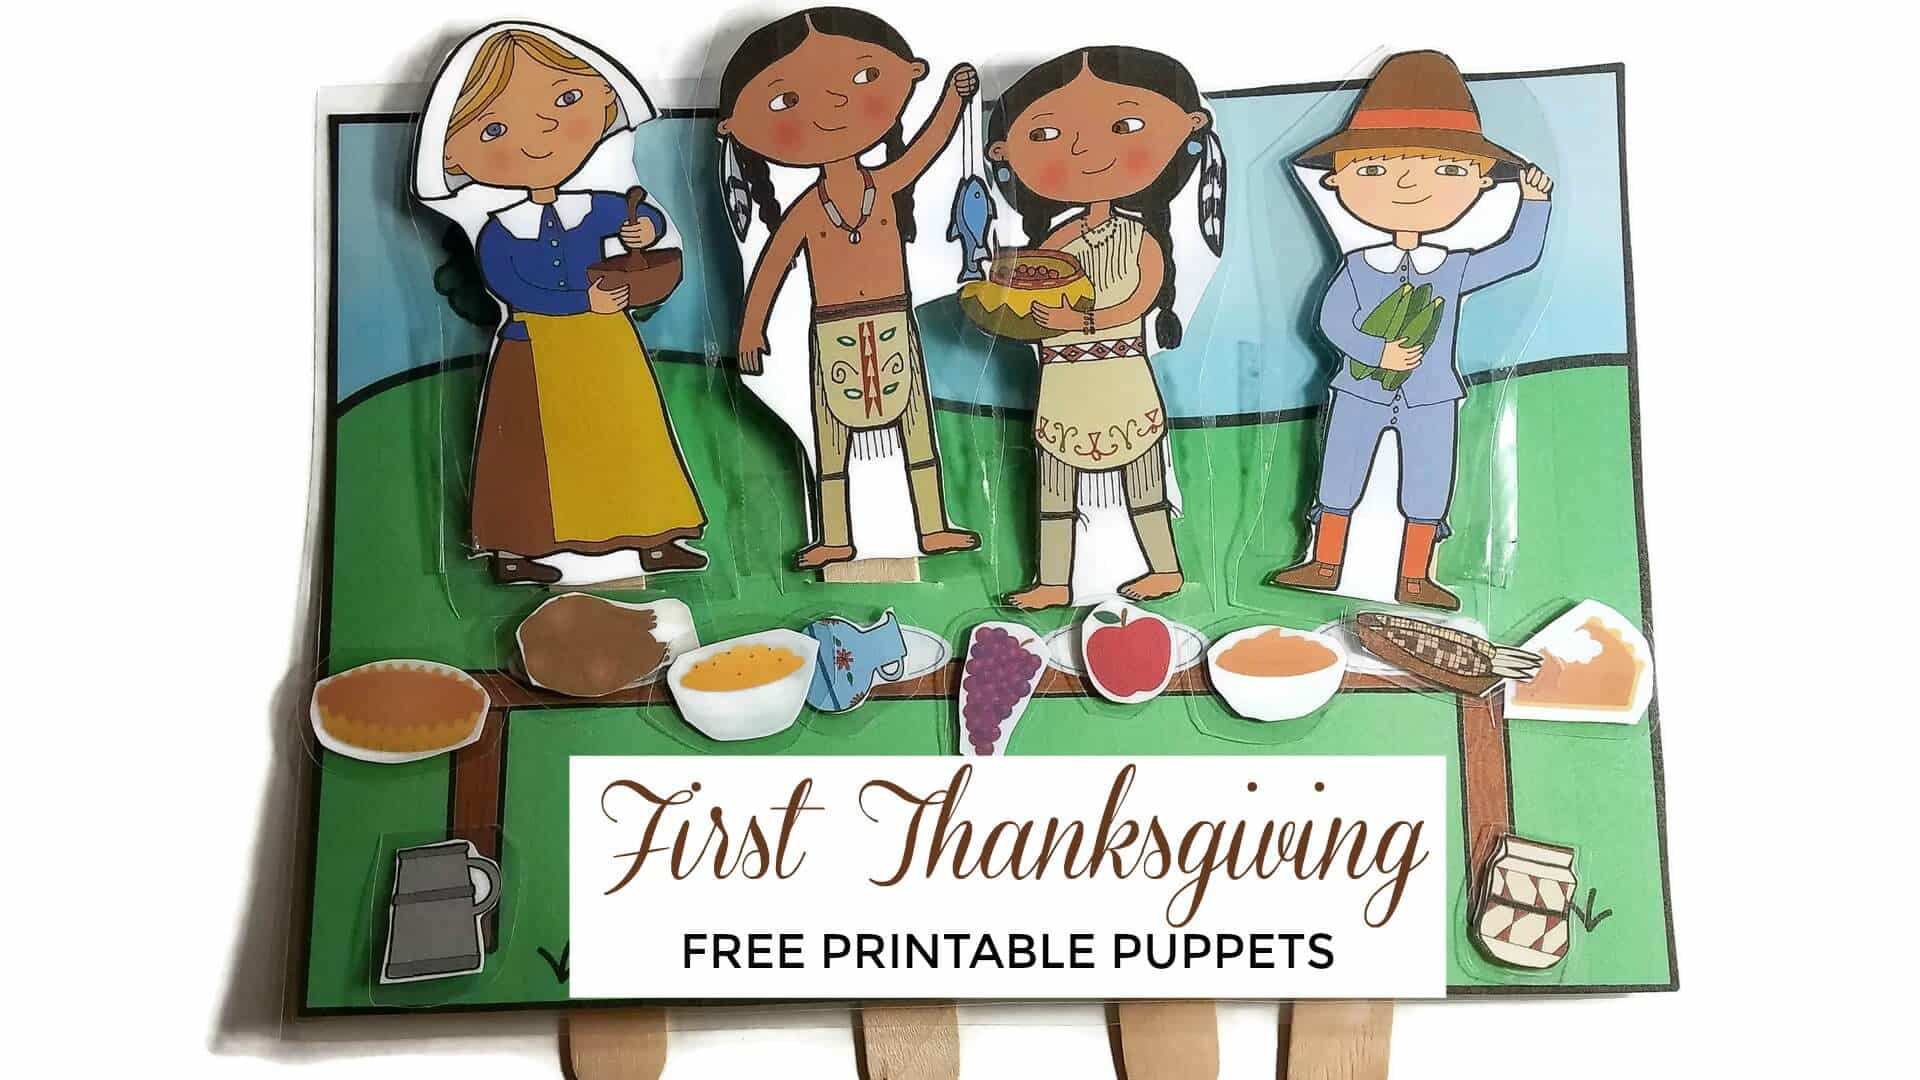 Retell the story of the first Thanksgiving with these first Thanksgiving puppets of Pilgrim and Indian (Wampanoag) Children.